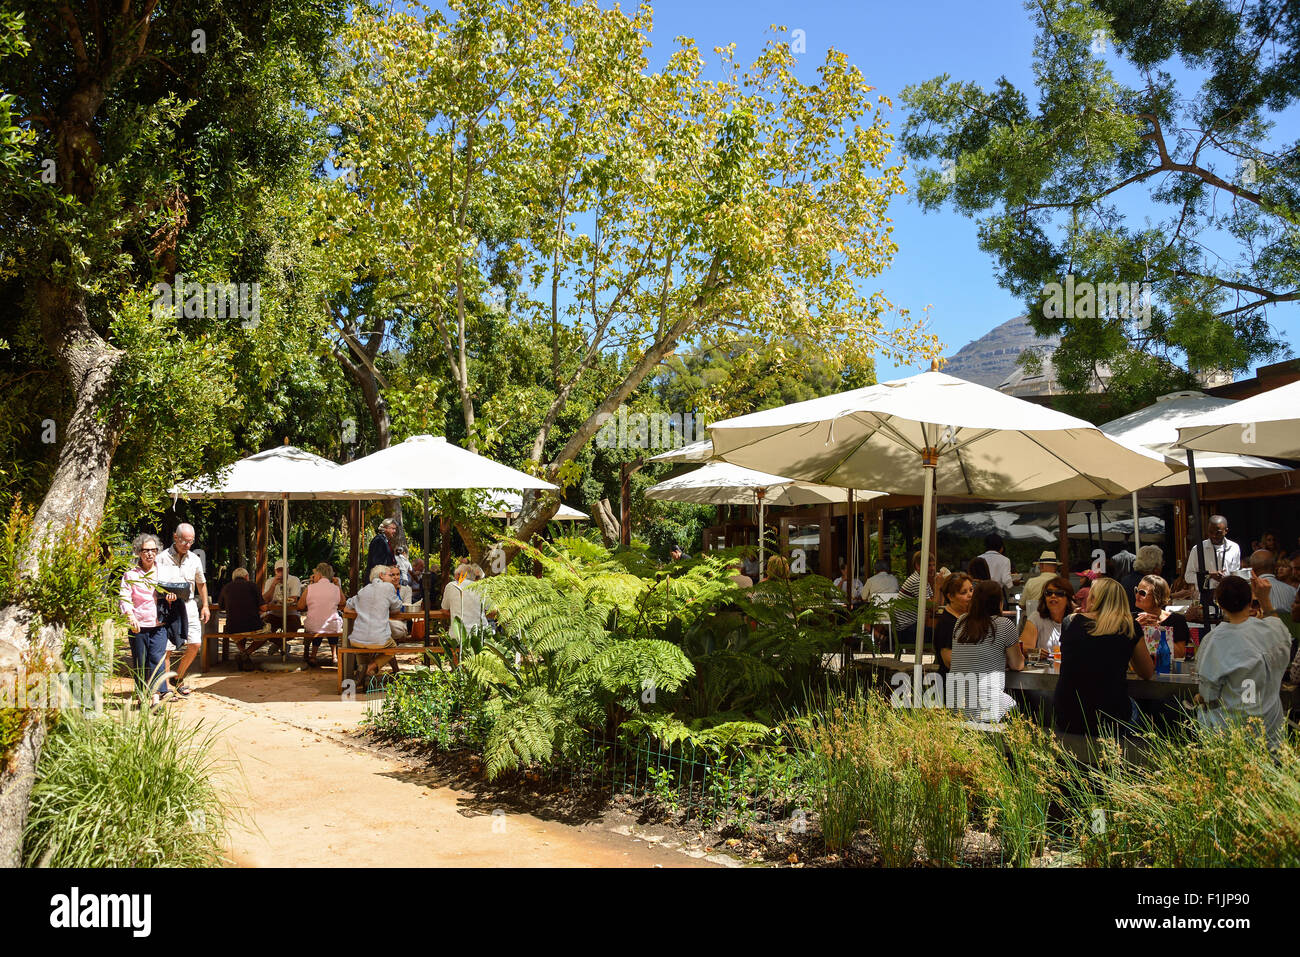 The Restaurant in The Public Garden, Cape Town, Western Cape Province, Republic of South Africa - Stock Image